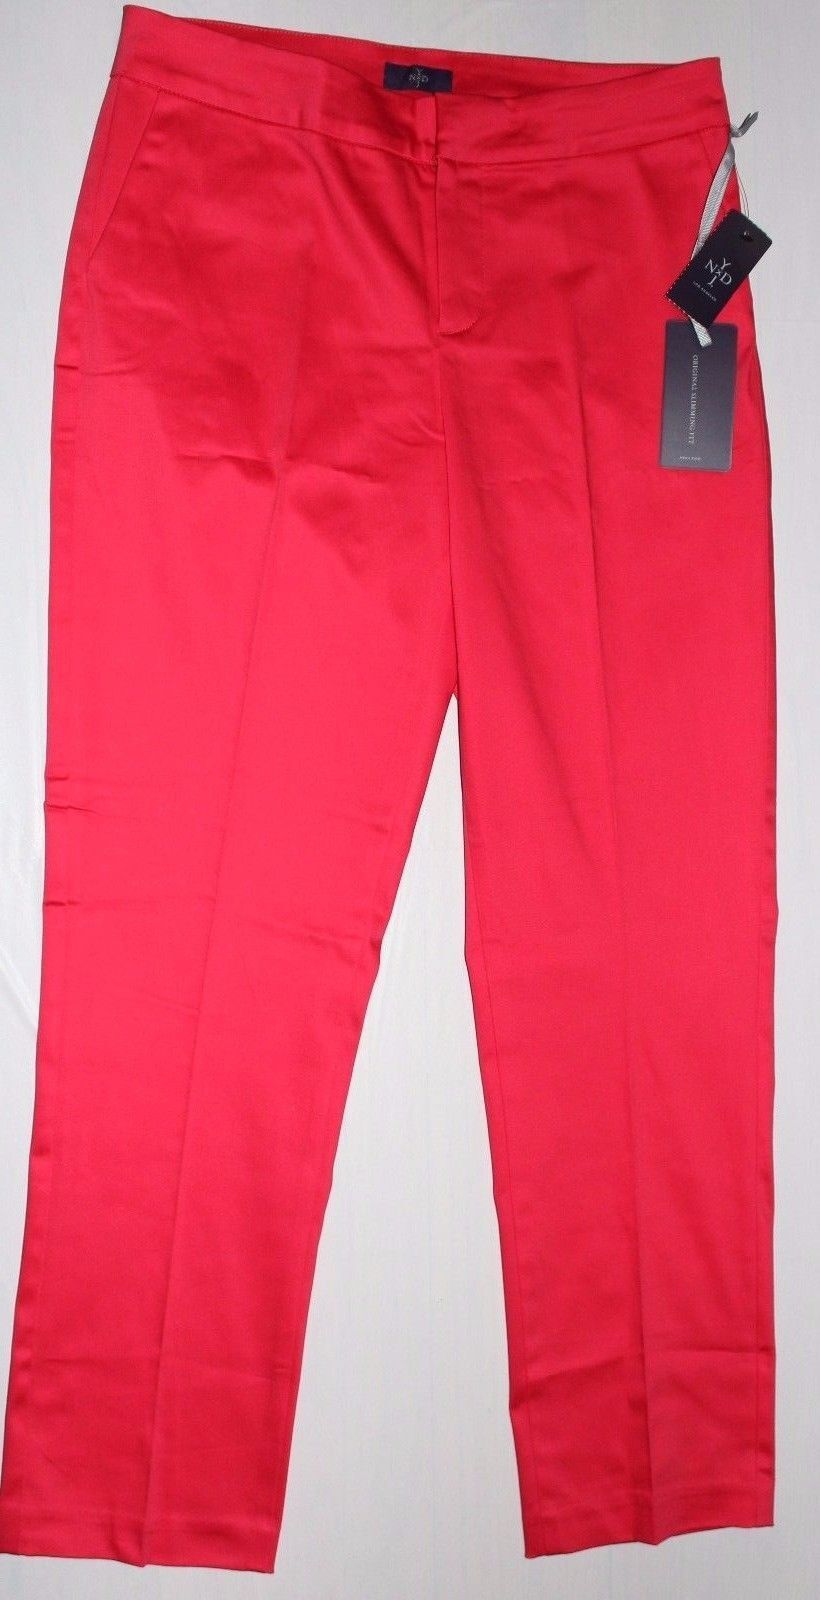 NYDJ NOT YOUR DAUGHTER'S JEANS LOLLIPOP CORYNNA ANKLE PANTS